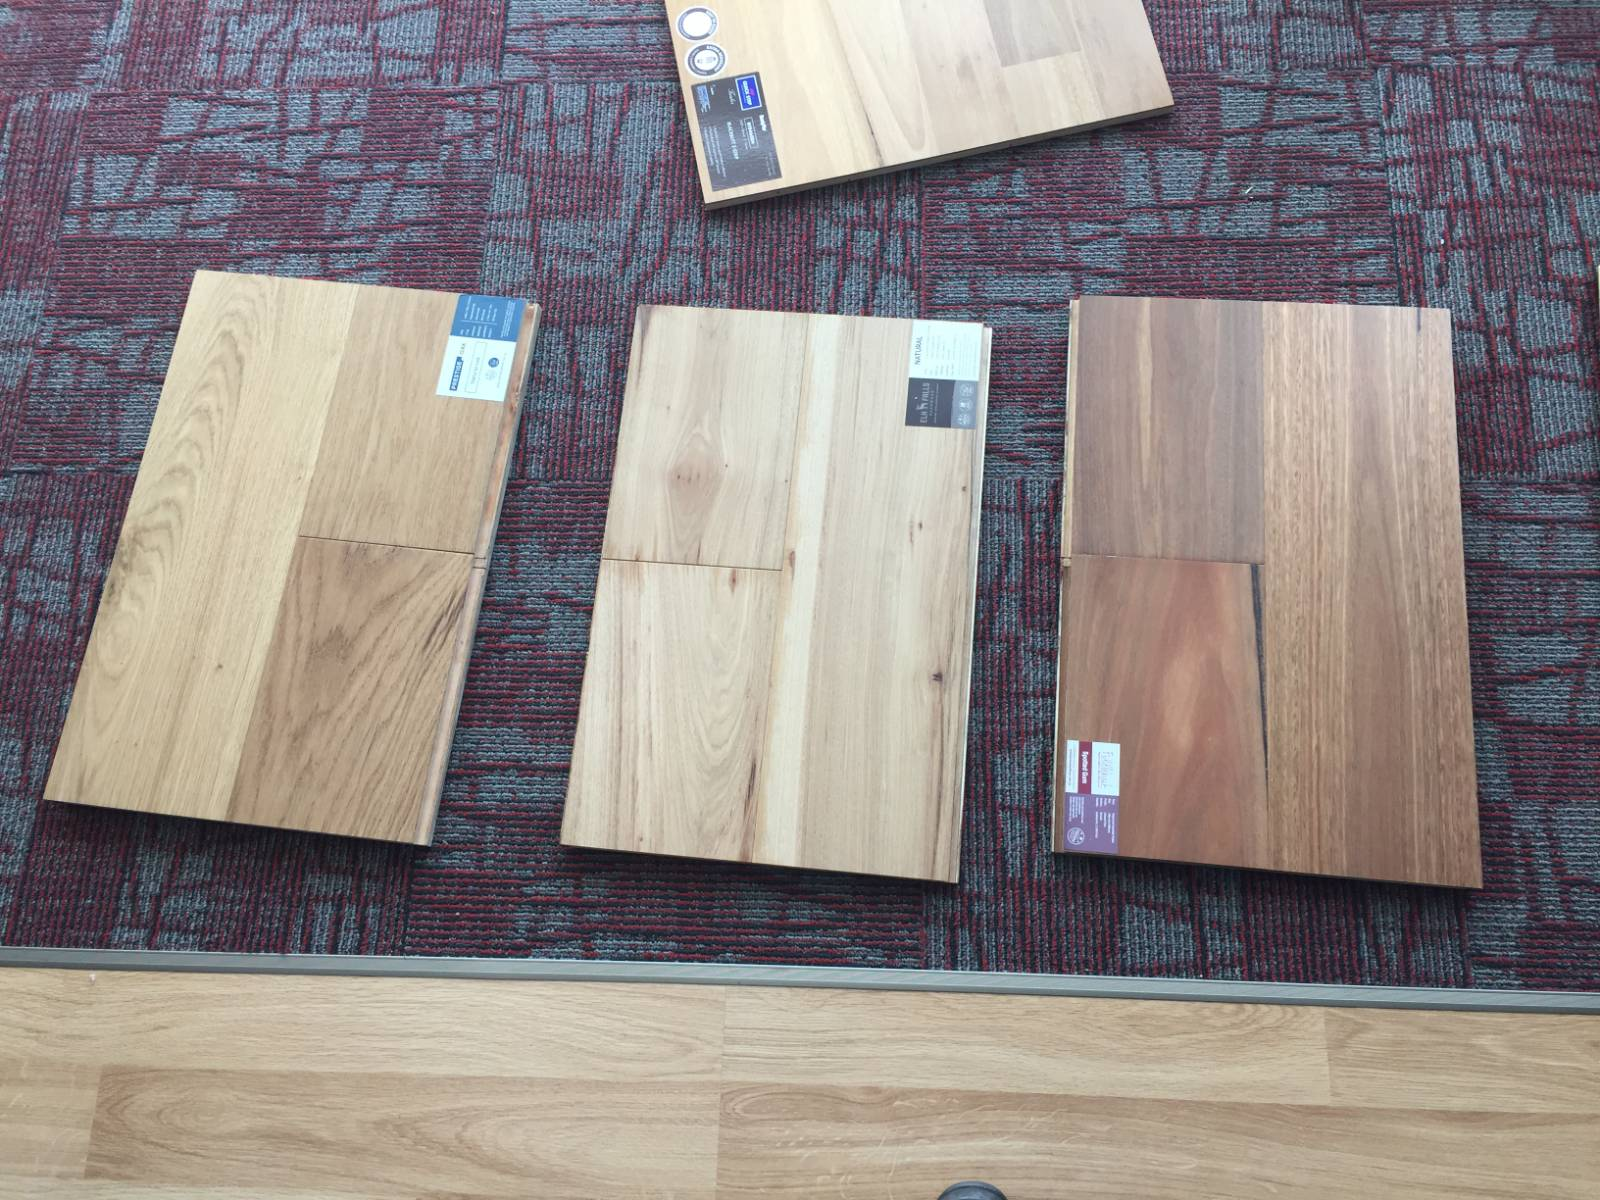 I work in flooring - do you have a flooring question?